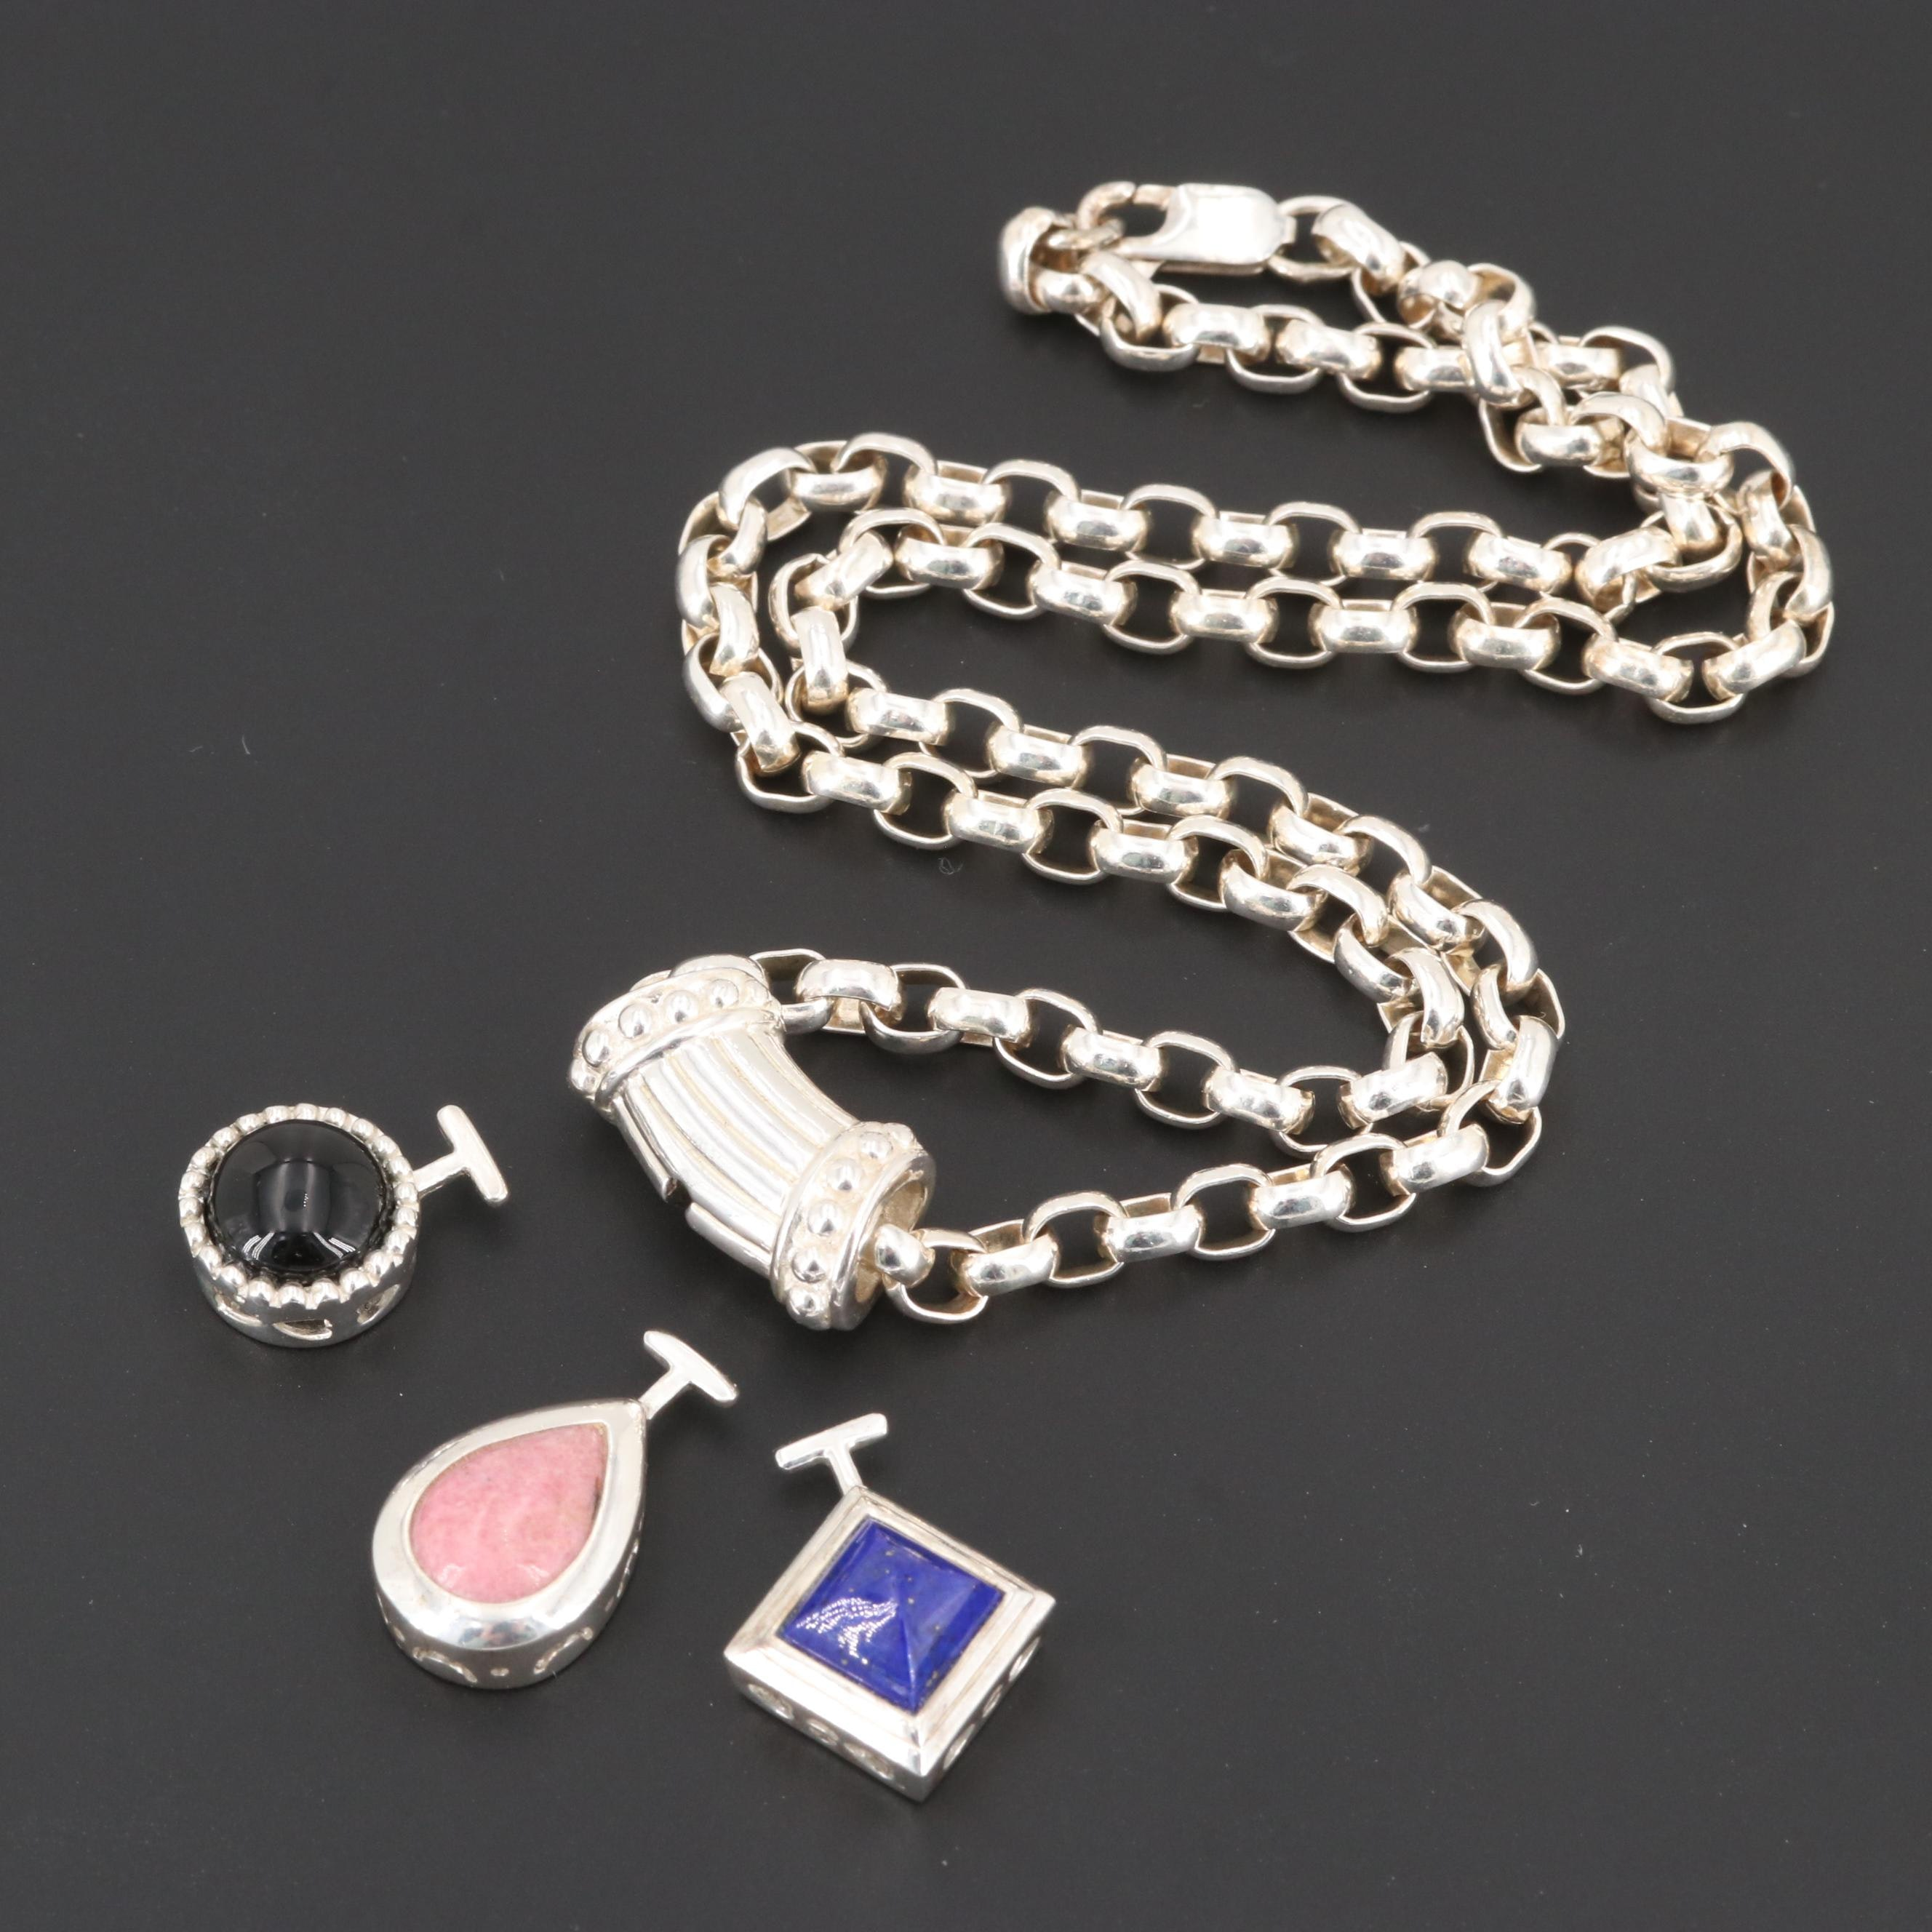 Sterling Slide Necklace with Black Onyx, Rhodonite and Lapis Lazuli Pendants